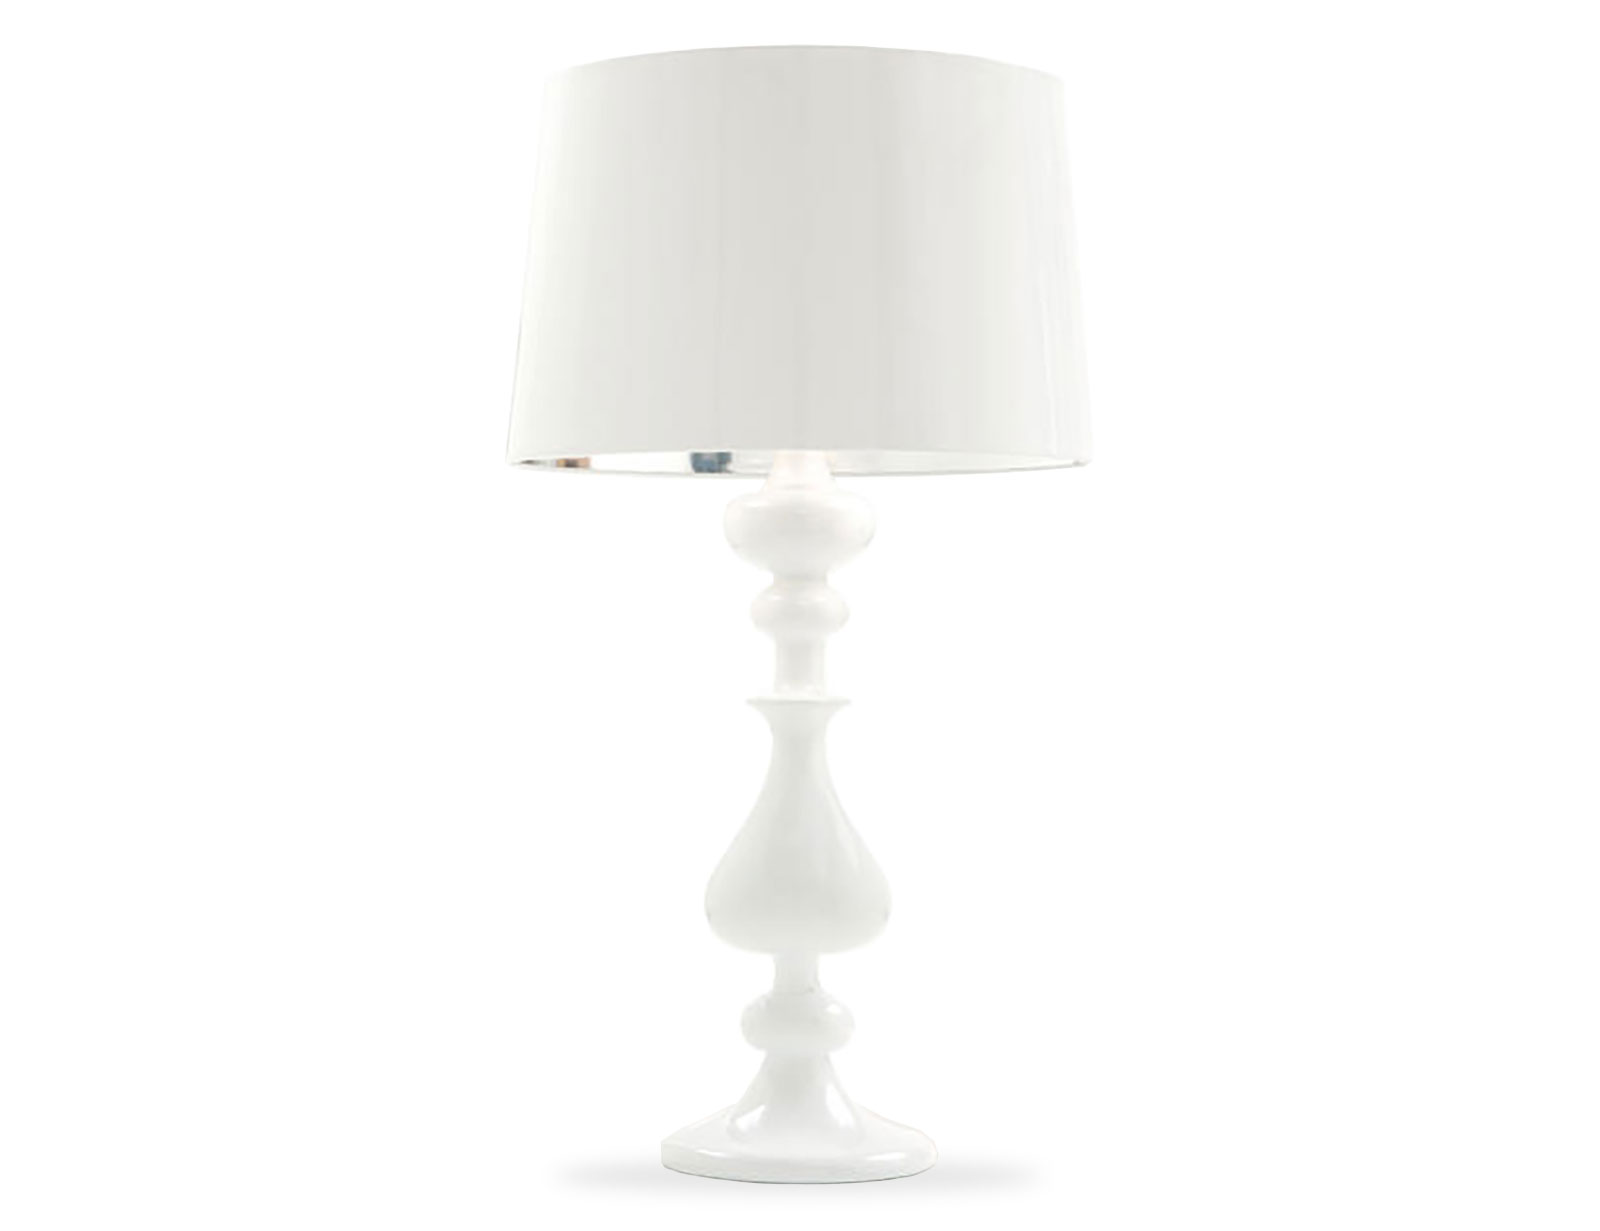 Arteriors Lola White Table Lamp Clearance Sale